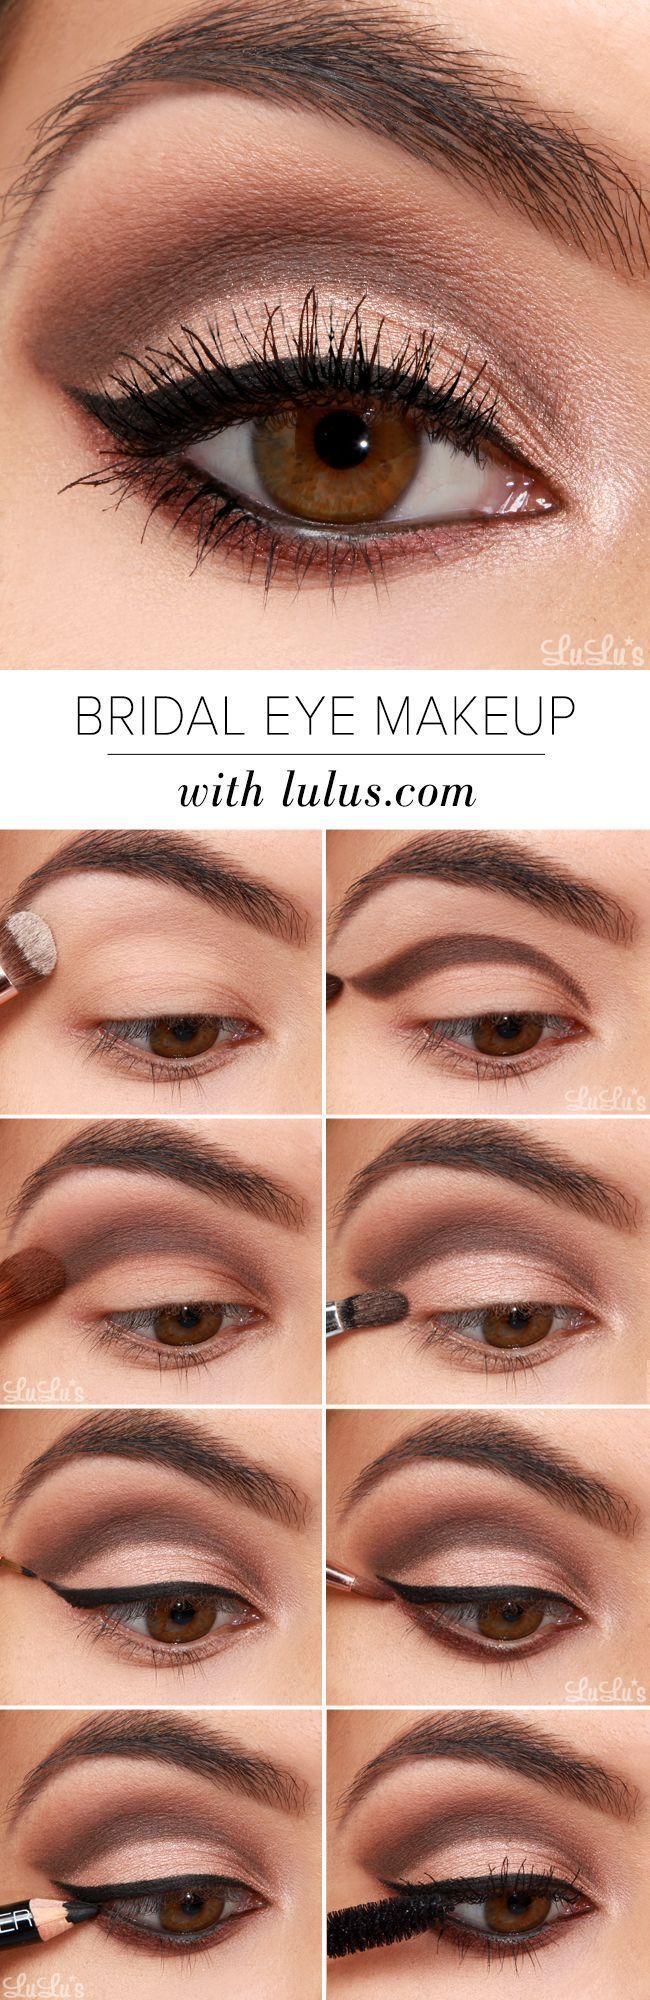 17 Super Basic Eye Makeup Ideas for Beginners 2018 | Step guide ...